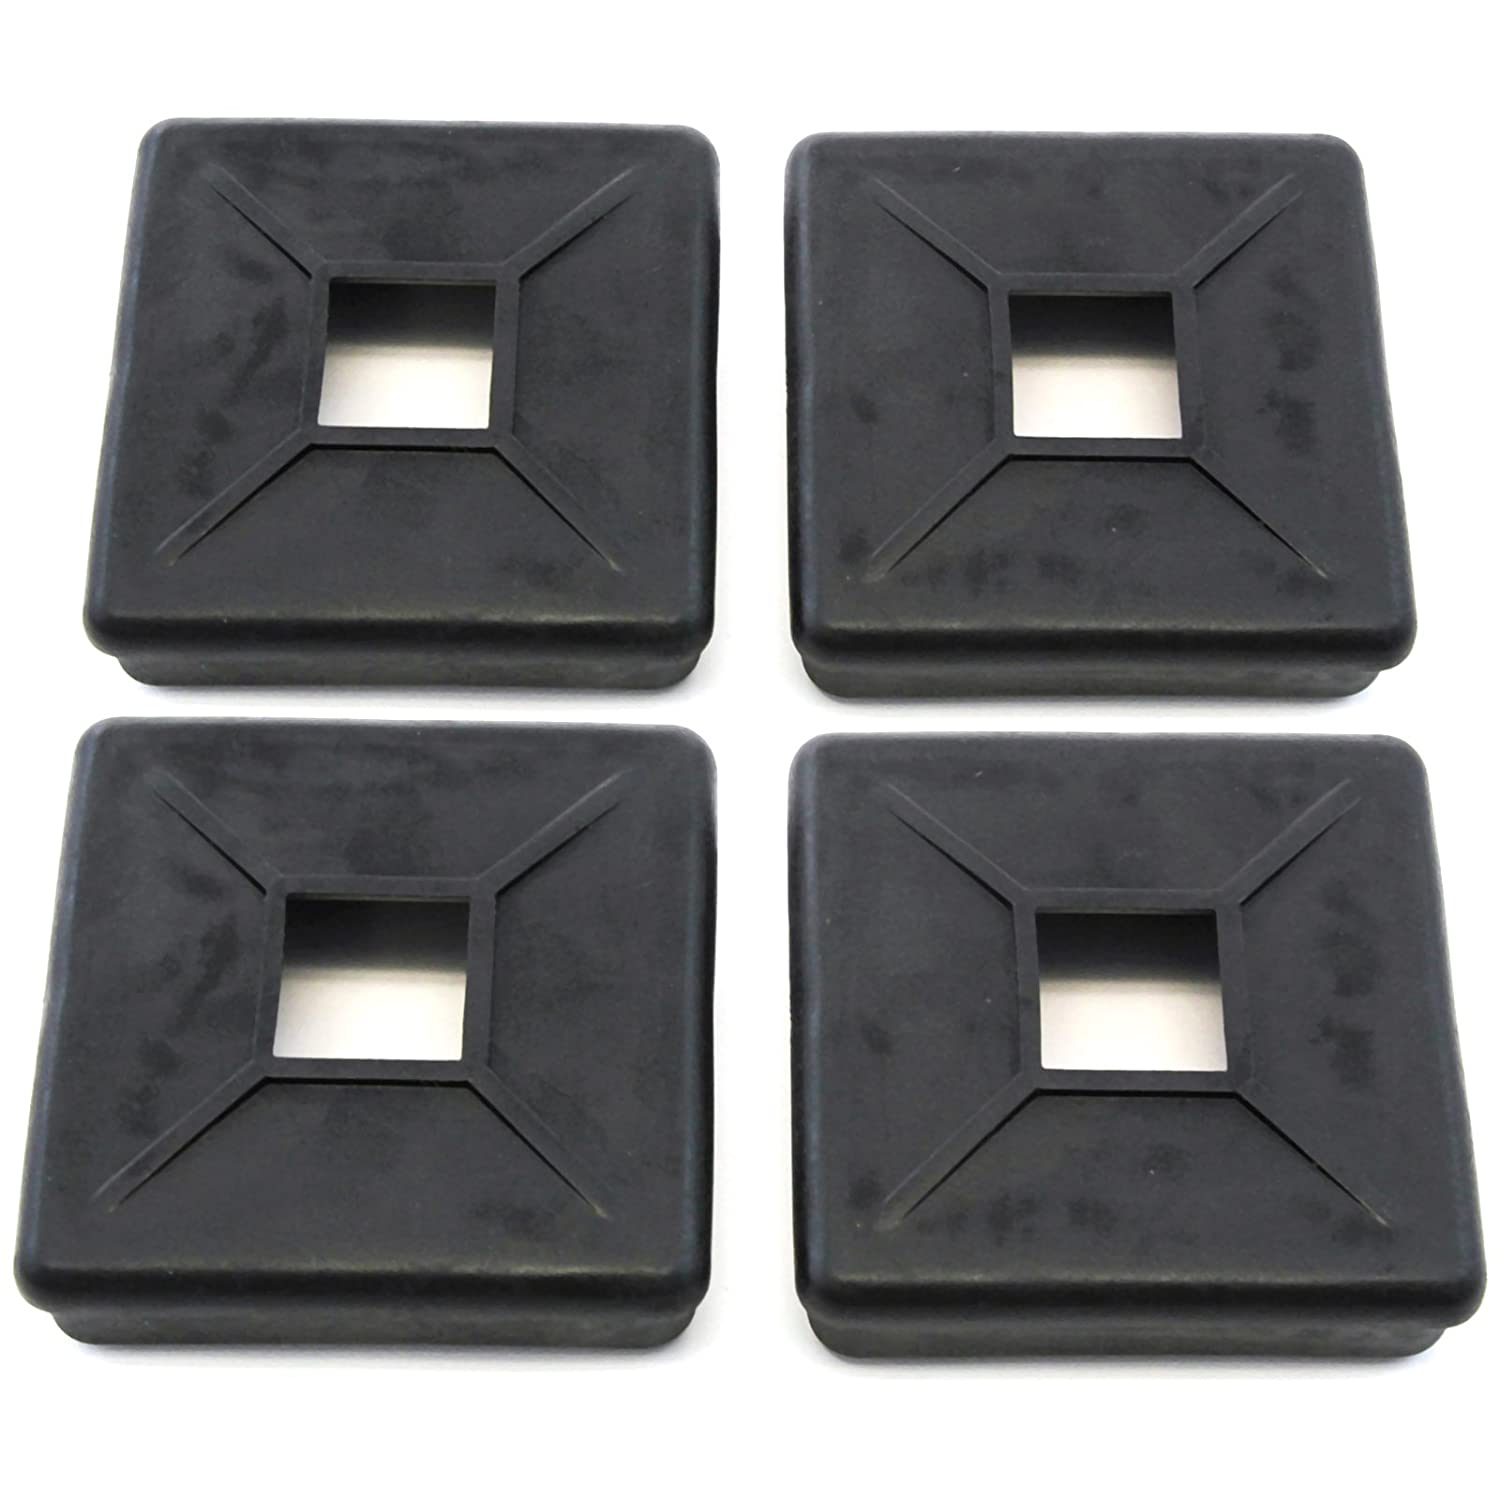 Red Hound Auto 4 Bumper Plug End Caps Square 4 Vented Cover 4pc Set RV Camper Trailer